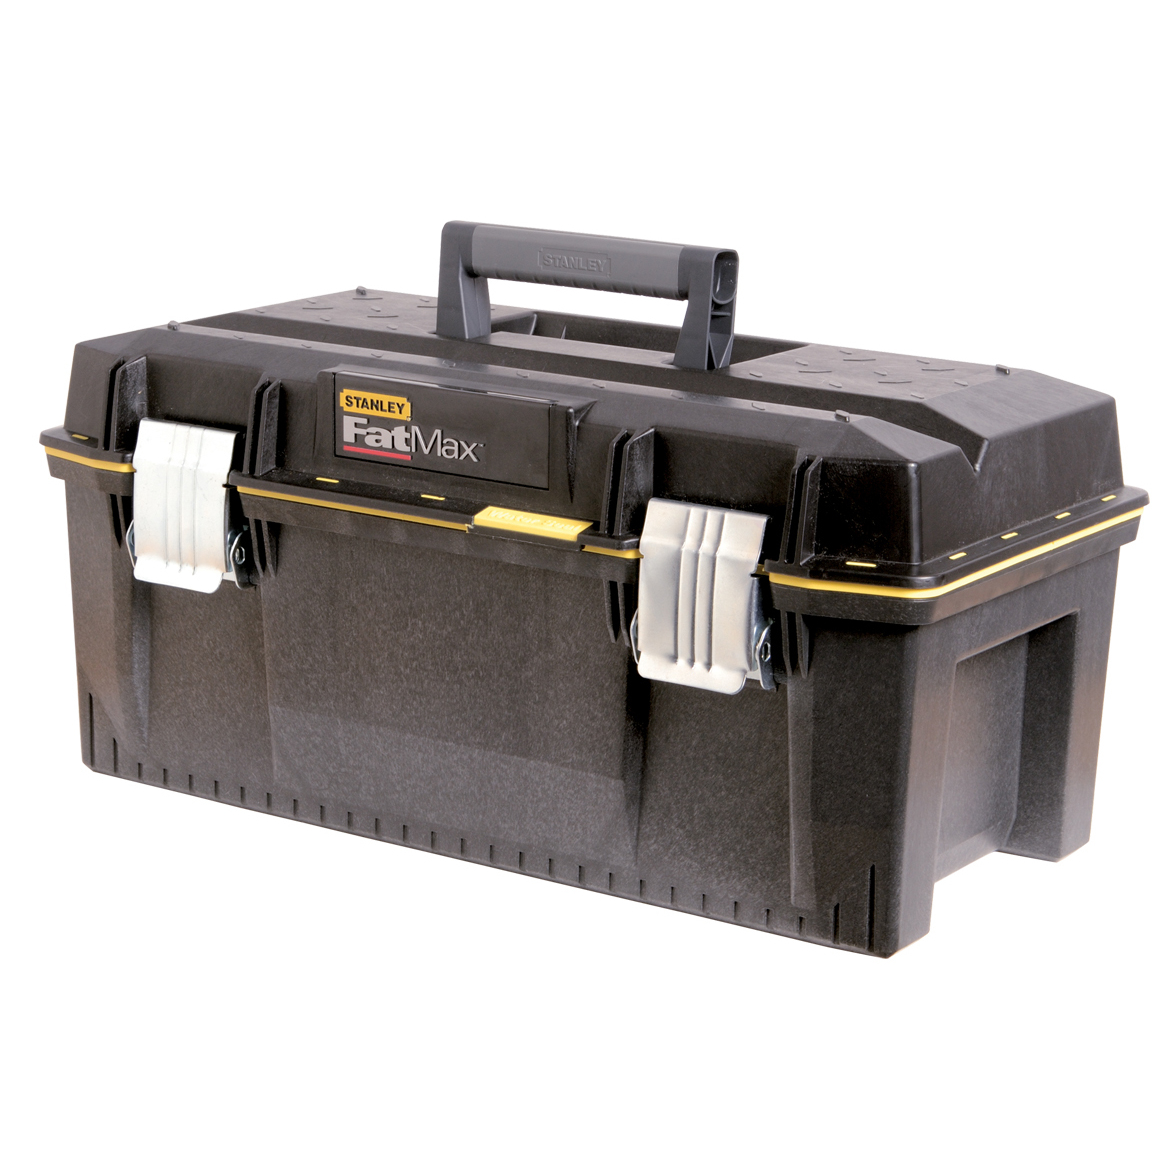 STANLEY FatMax 023001W 23-Inch Structural Foam Tool Box